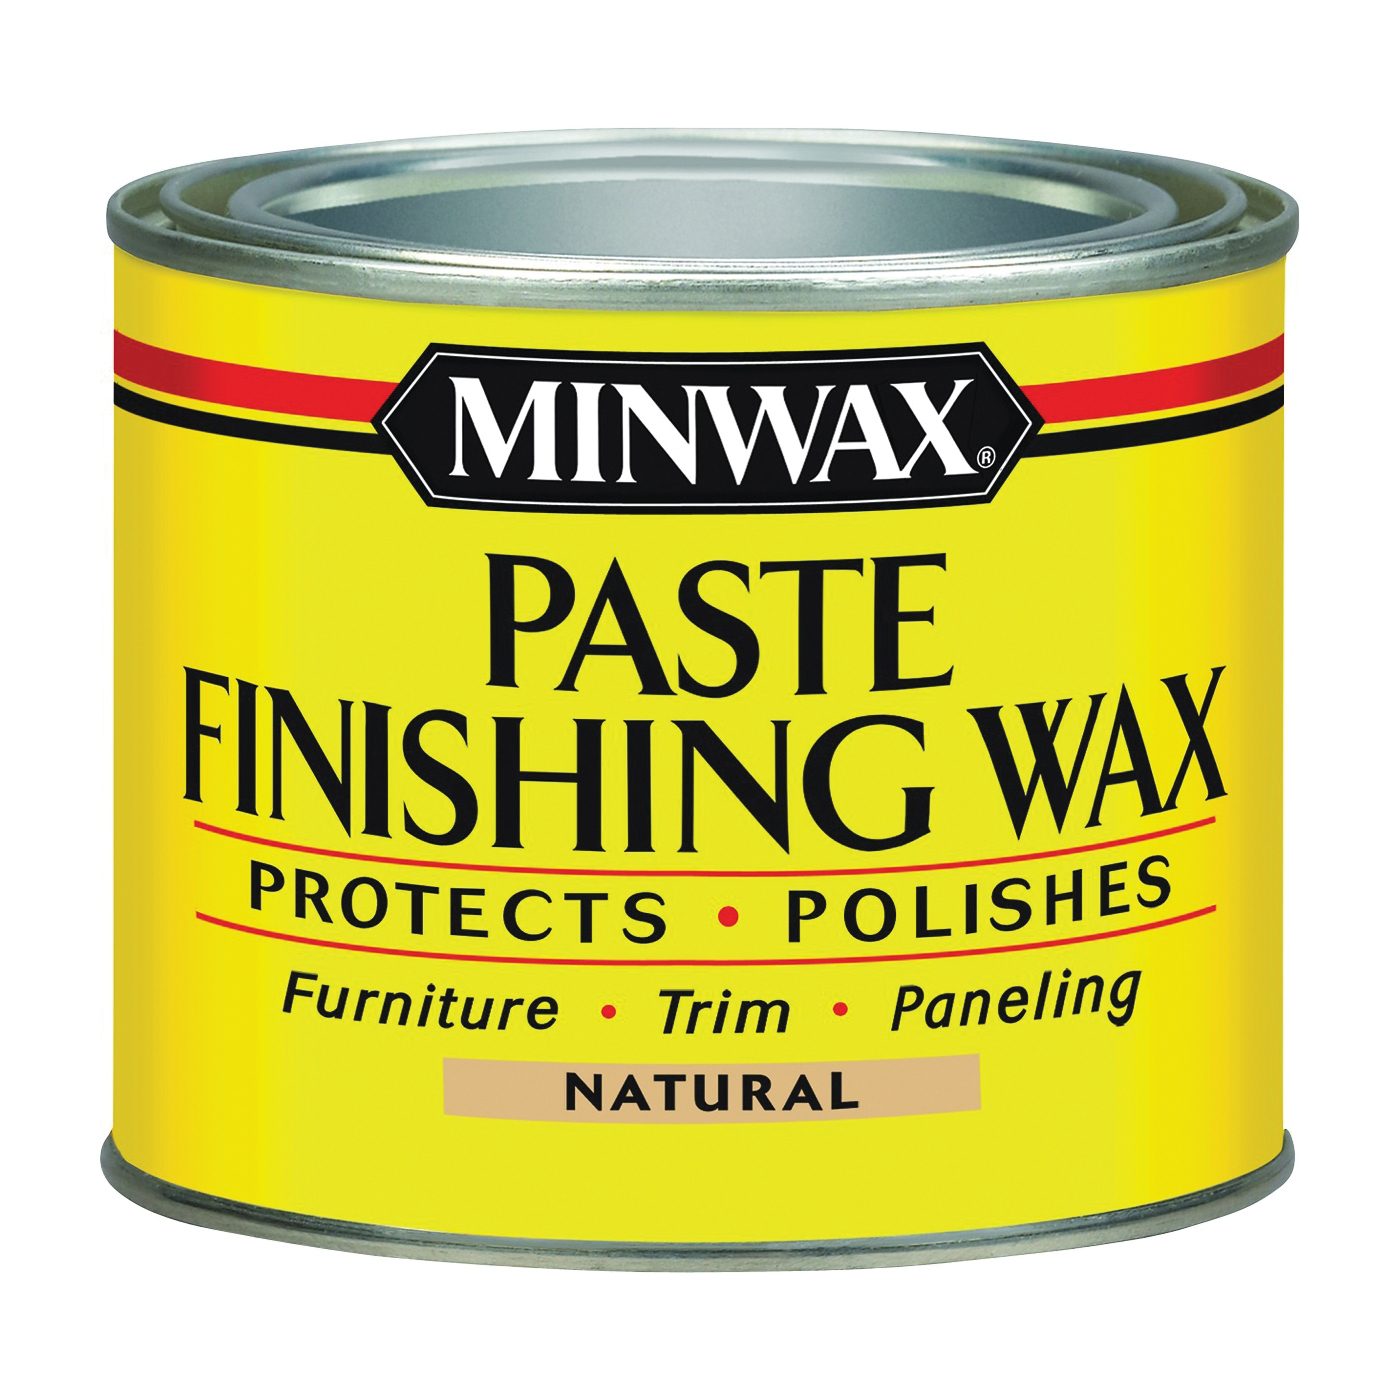 Picture of Minwax 785004444 Finishing Wax, Natural, Paste, 1 lb, Can